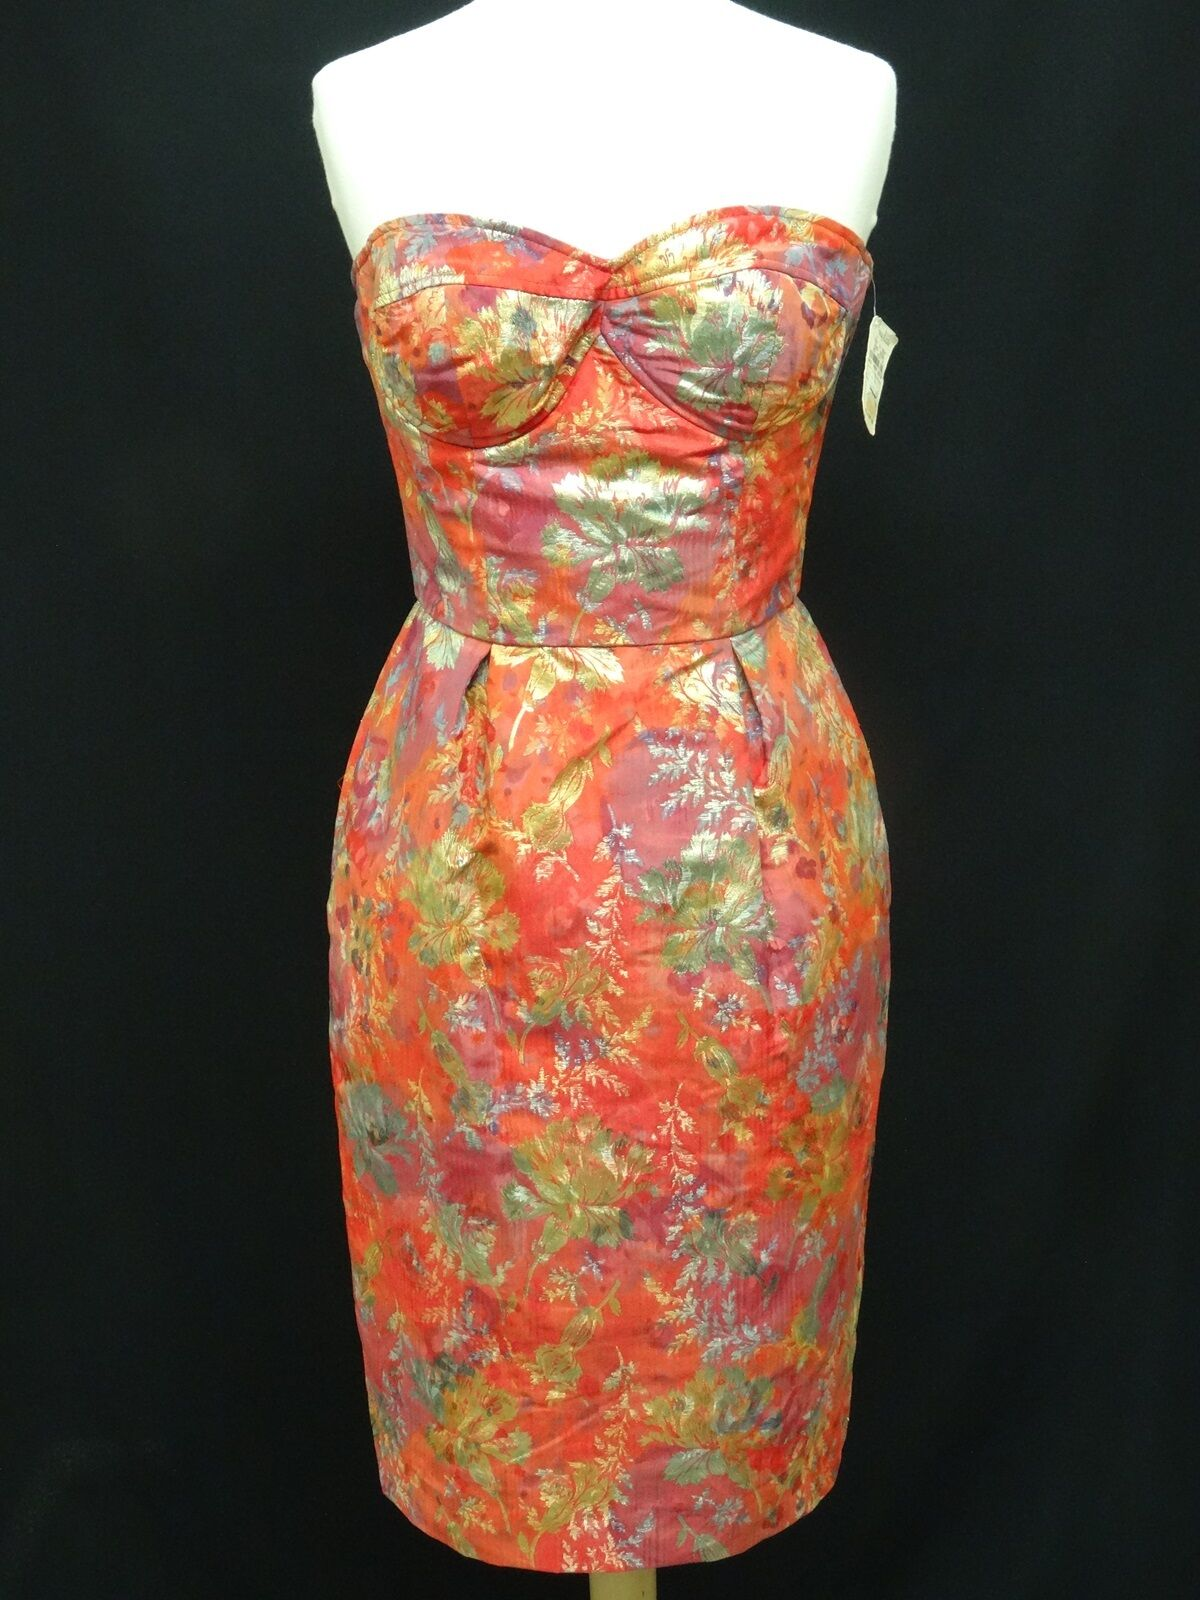 VINTAGE CHRISTIAN LACROIX FLORAL DRESS sz 36 w  ORIGINAL PRICE TAG  2128